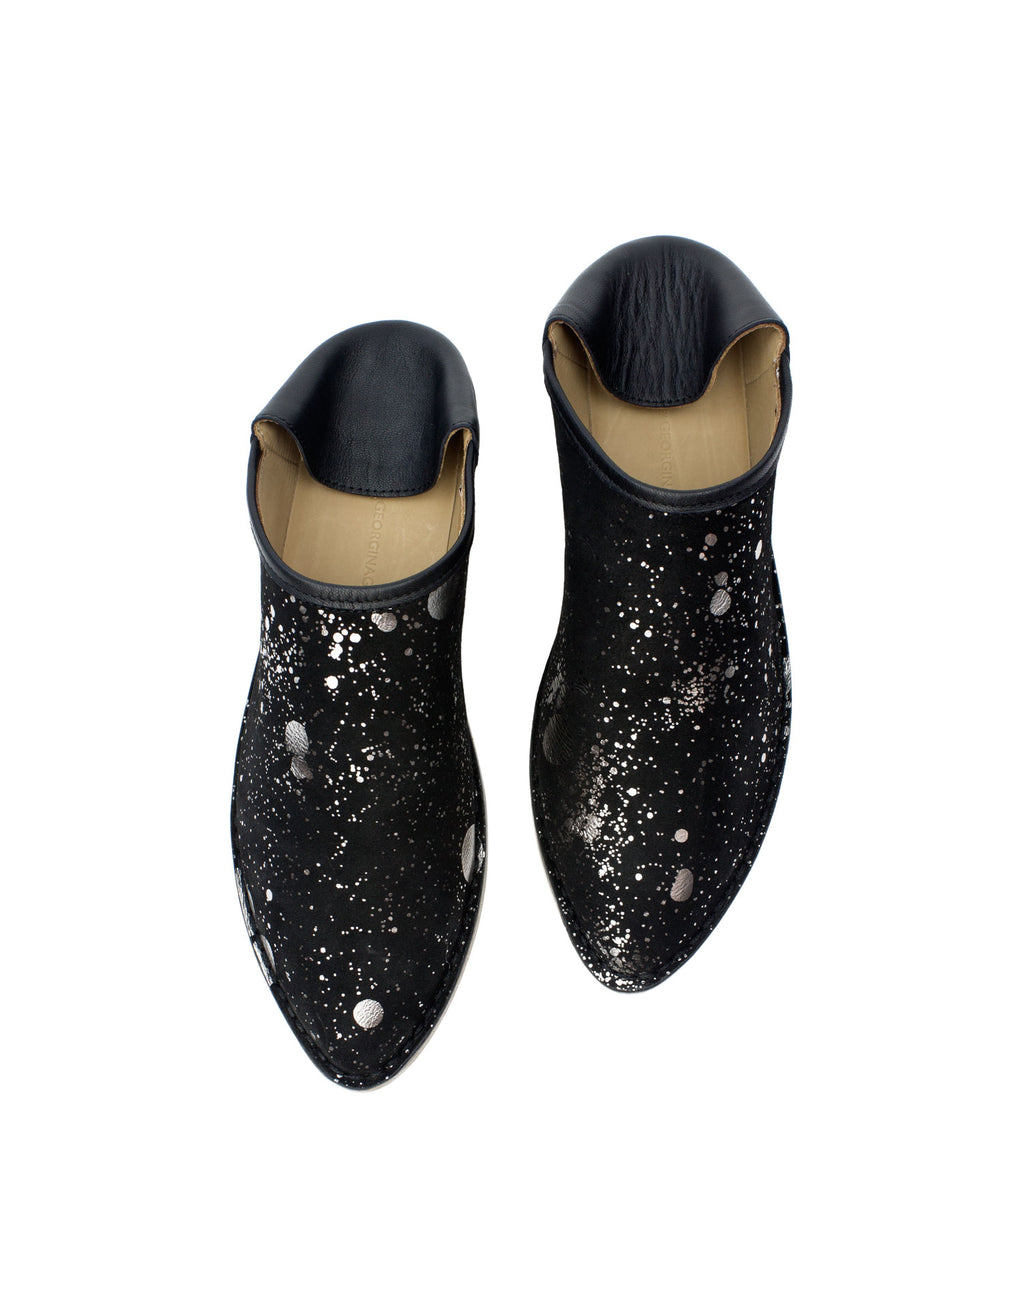 Black and silver splash babouche with hidden wedge and padded insole. A designer slip on leather shoe, easy style, effortless at any age.